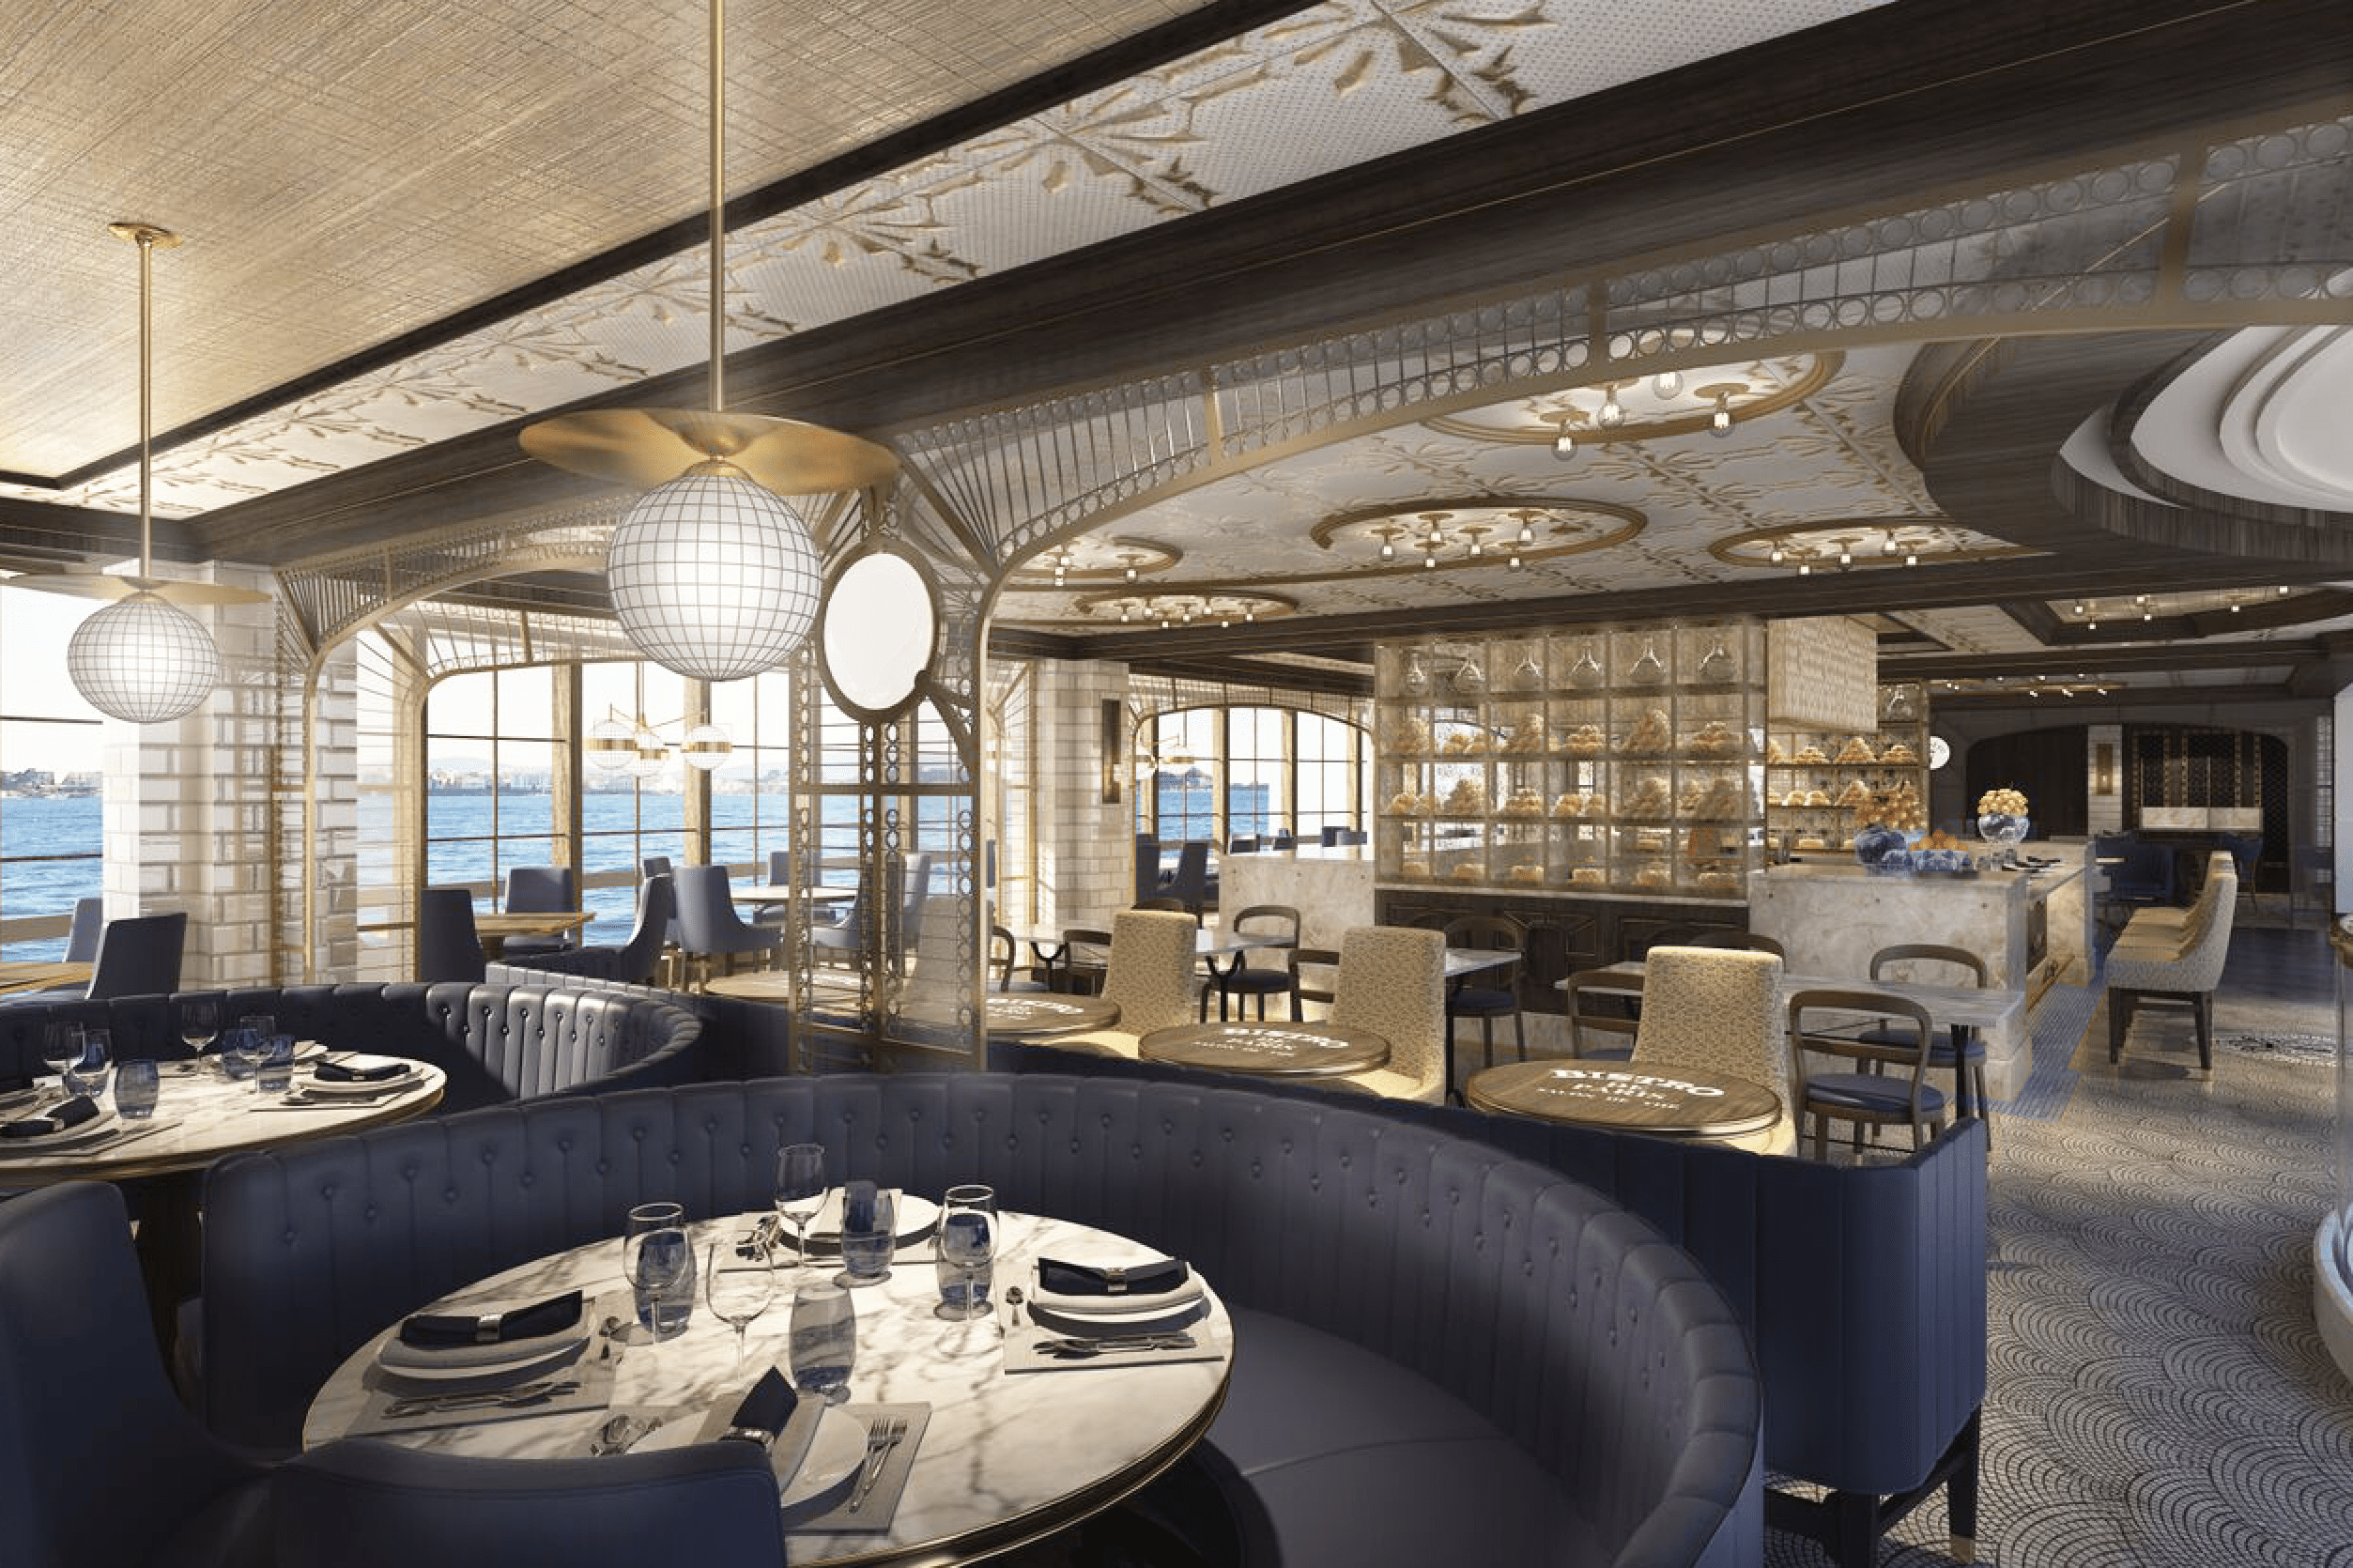 Norwegian Jewel La Cucina Menu The New Norwegian Joy Gets Set For Asian Tastes Cruise Travel Asia